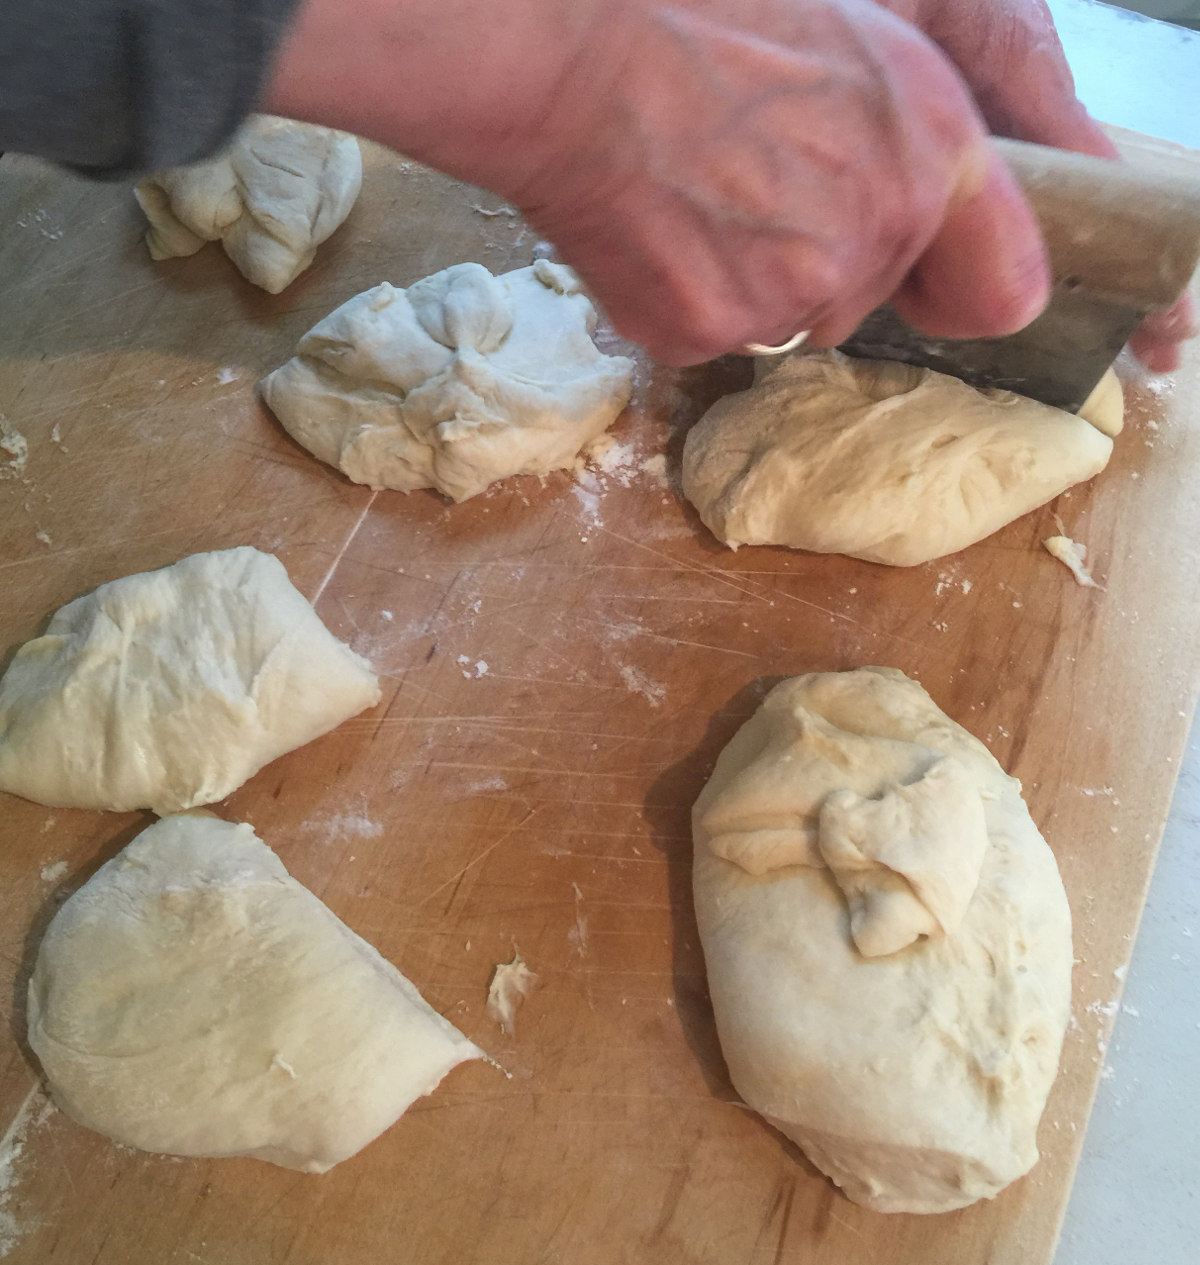 buttermilk cloverleaf rolls - cutting the risen dough into 16 pieces for rolls - Atticmag.com